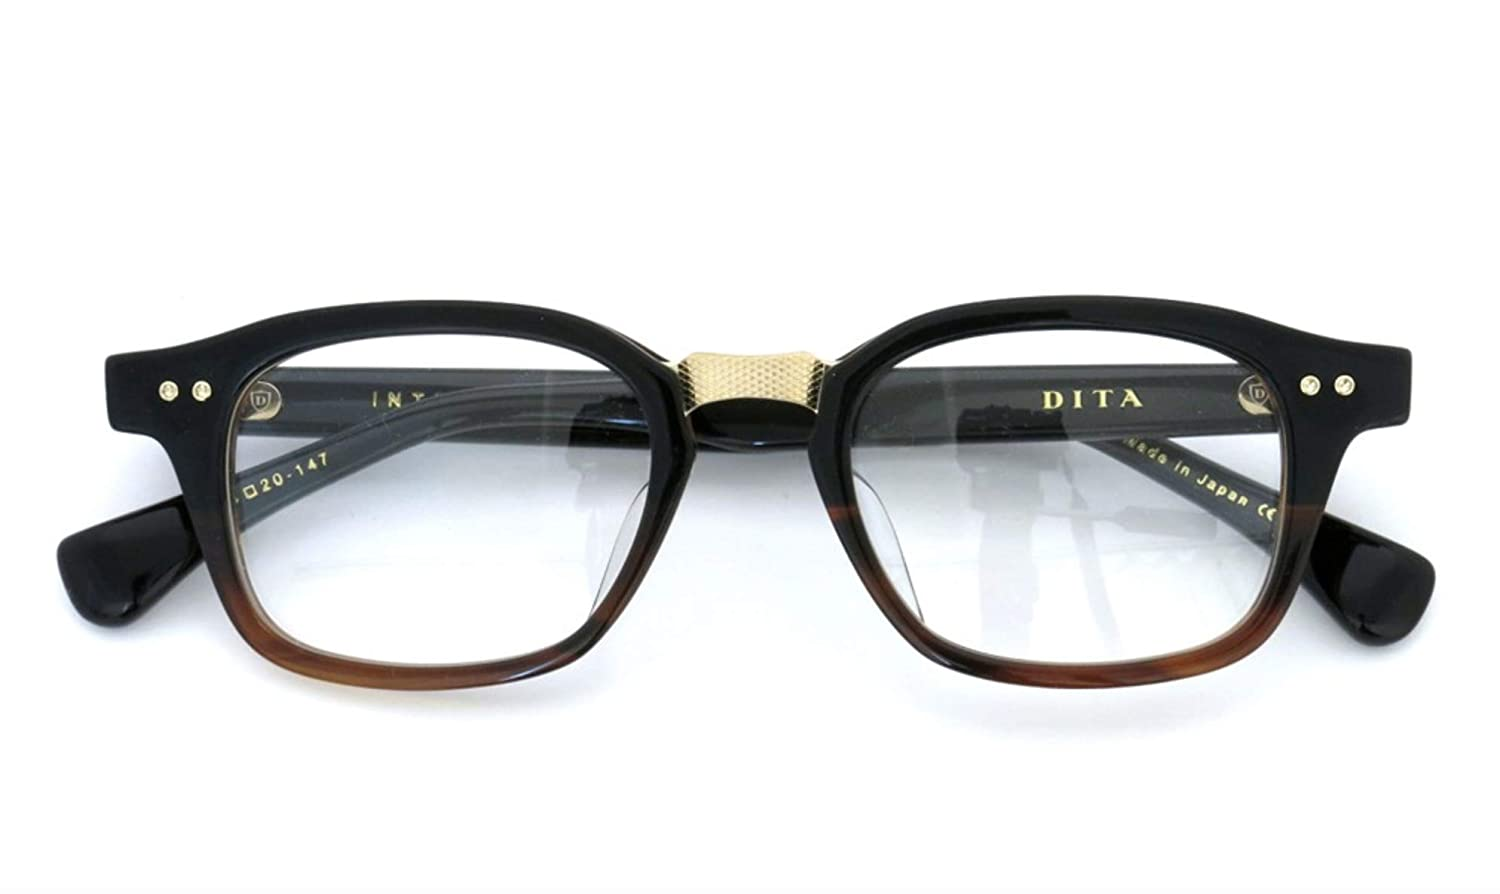 fc2738d70d5f Amazon.com  Dita INTELLIGENTE DRX-2050-C-BLK-TRT-GLD-48 Eyeglasses Black to  Tortoise Fade - Antique 12K Gold 48mm  Clothing